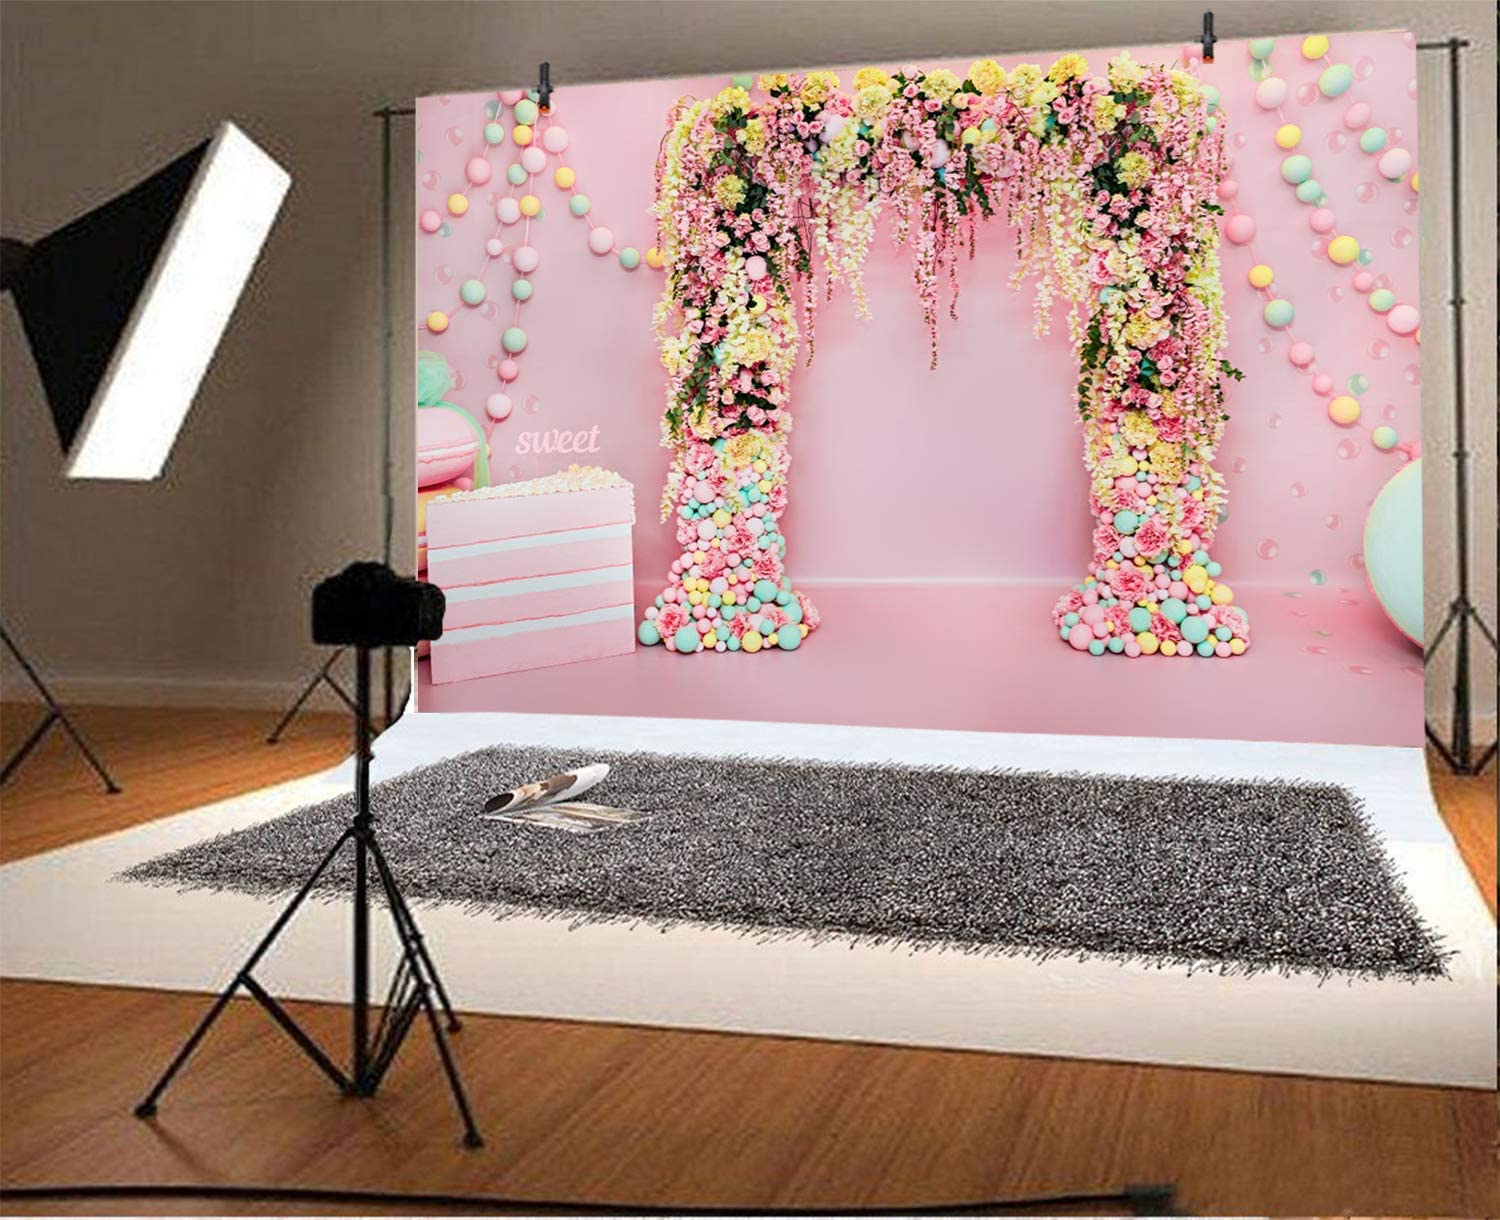 Wedding Backdrop 10x6.5ft Pink Sweet Theme Polyester Photography Background Cake Smash Colorful Flowers Balloons Lover Couple Girls Birthday Valentines Day Party Studio Photo Props Studio